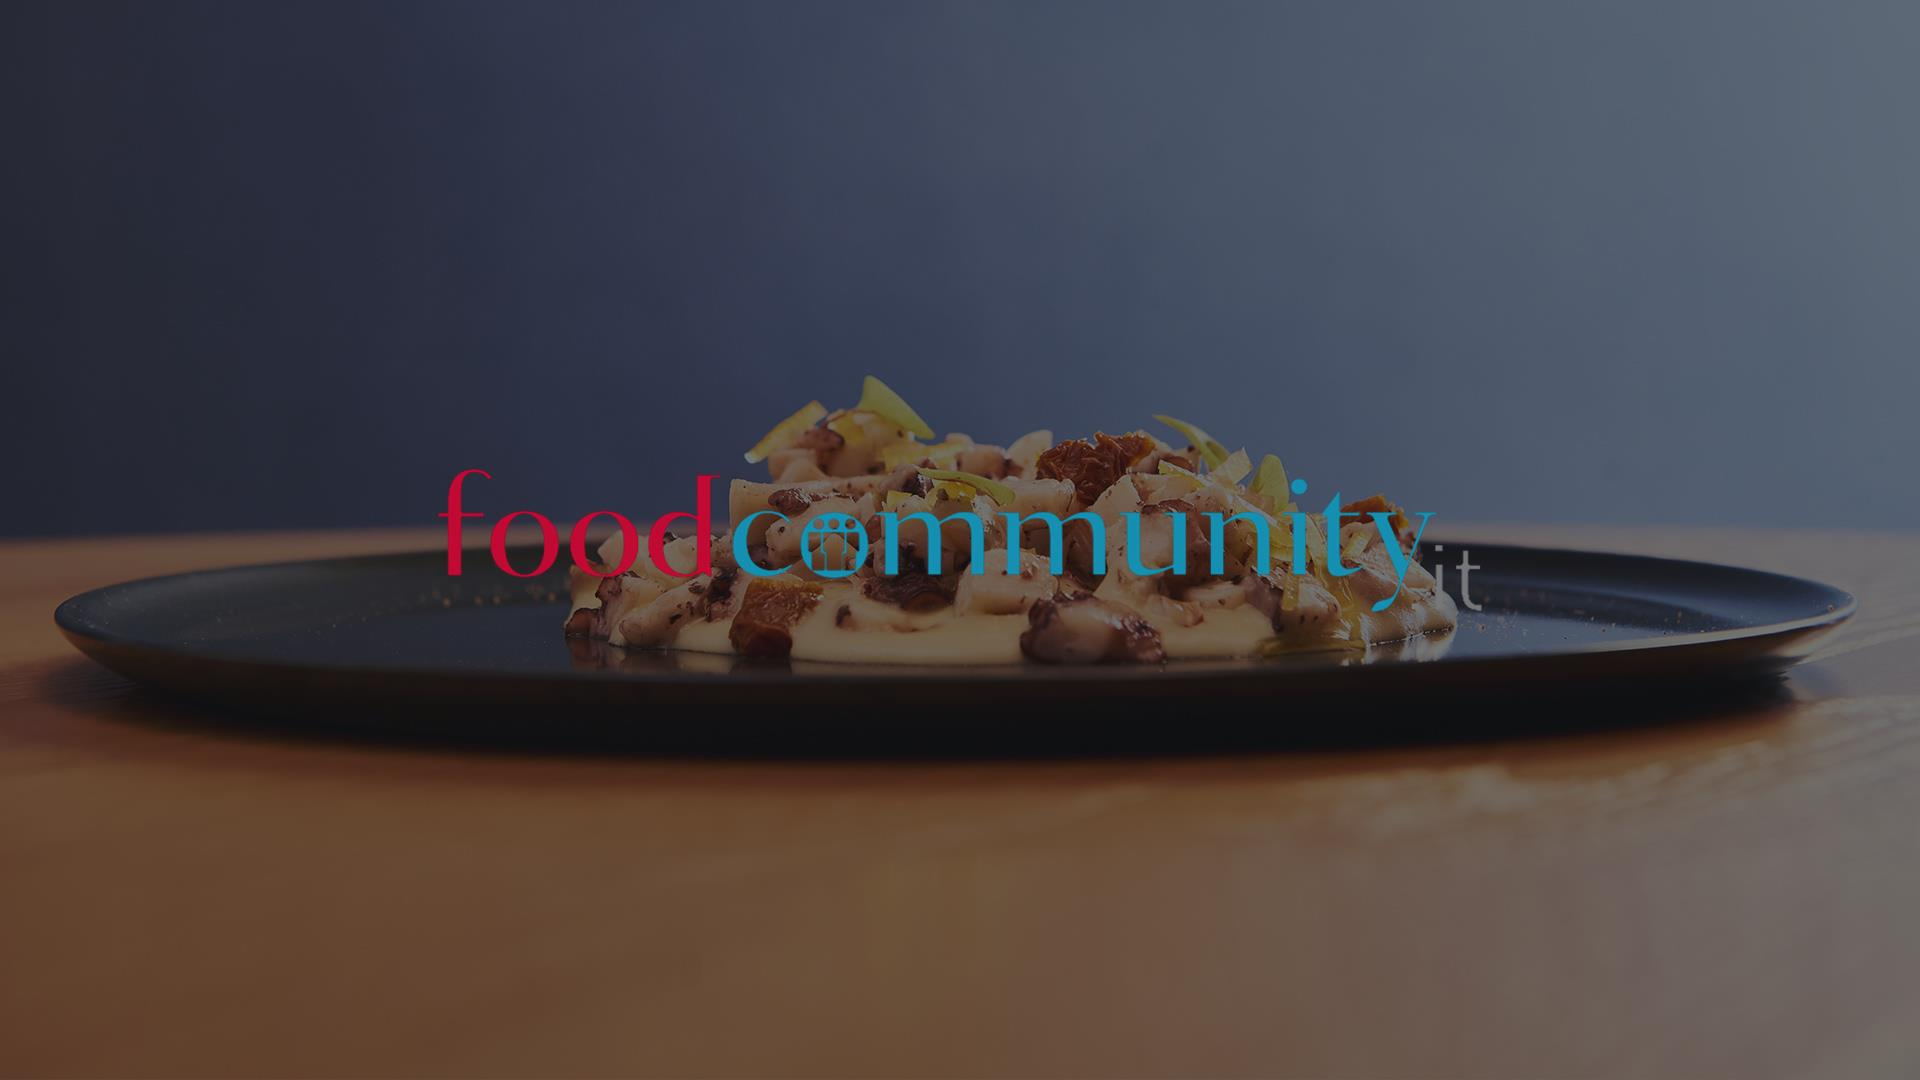 Roberto Giannoni su FoodCommunity.it